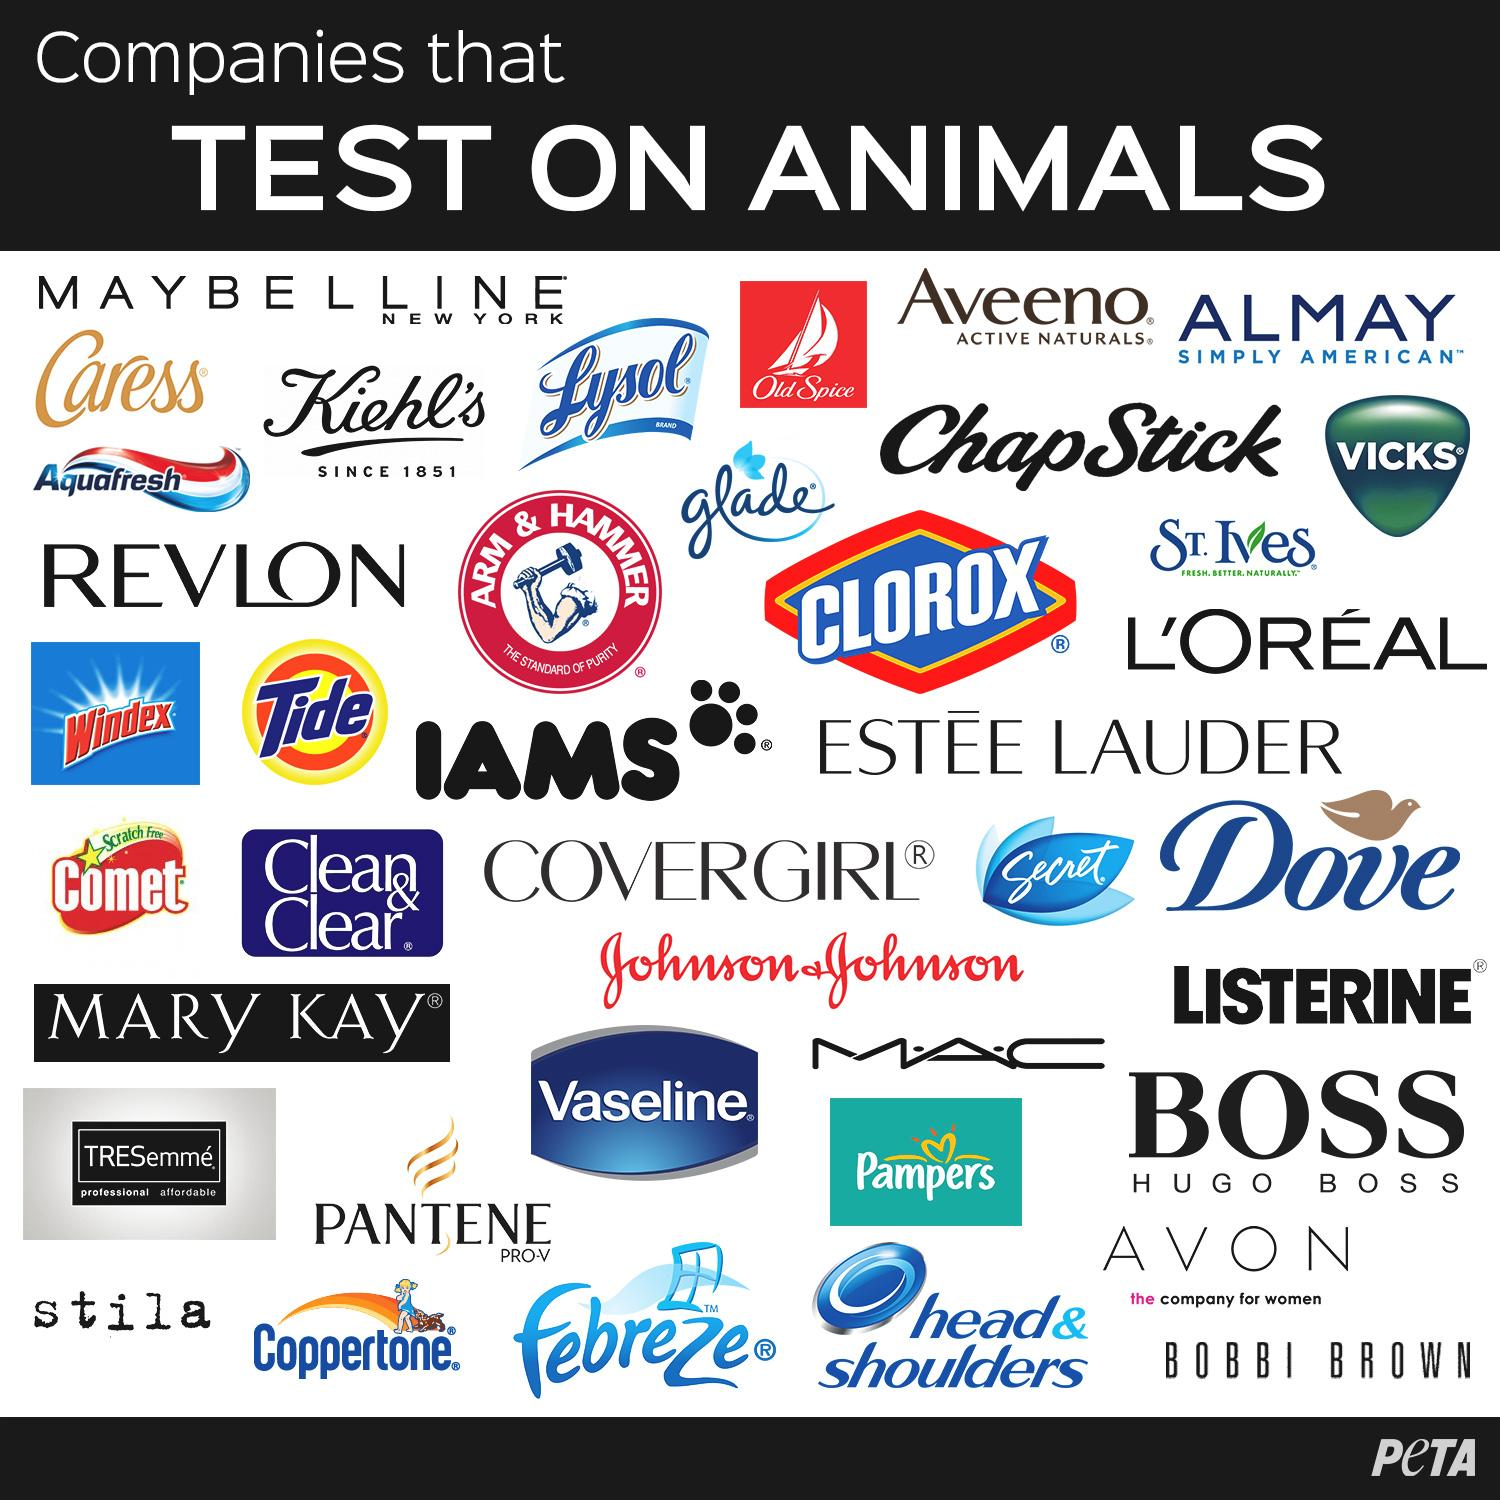 animals test companies animal peta makeup cruelty brands stop help tested them which testing cosmetics cosmetic beauty don still skin